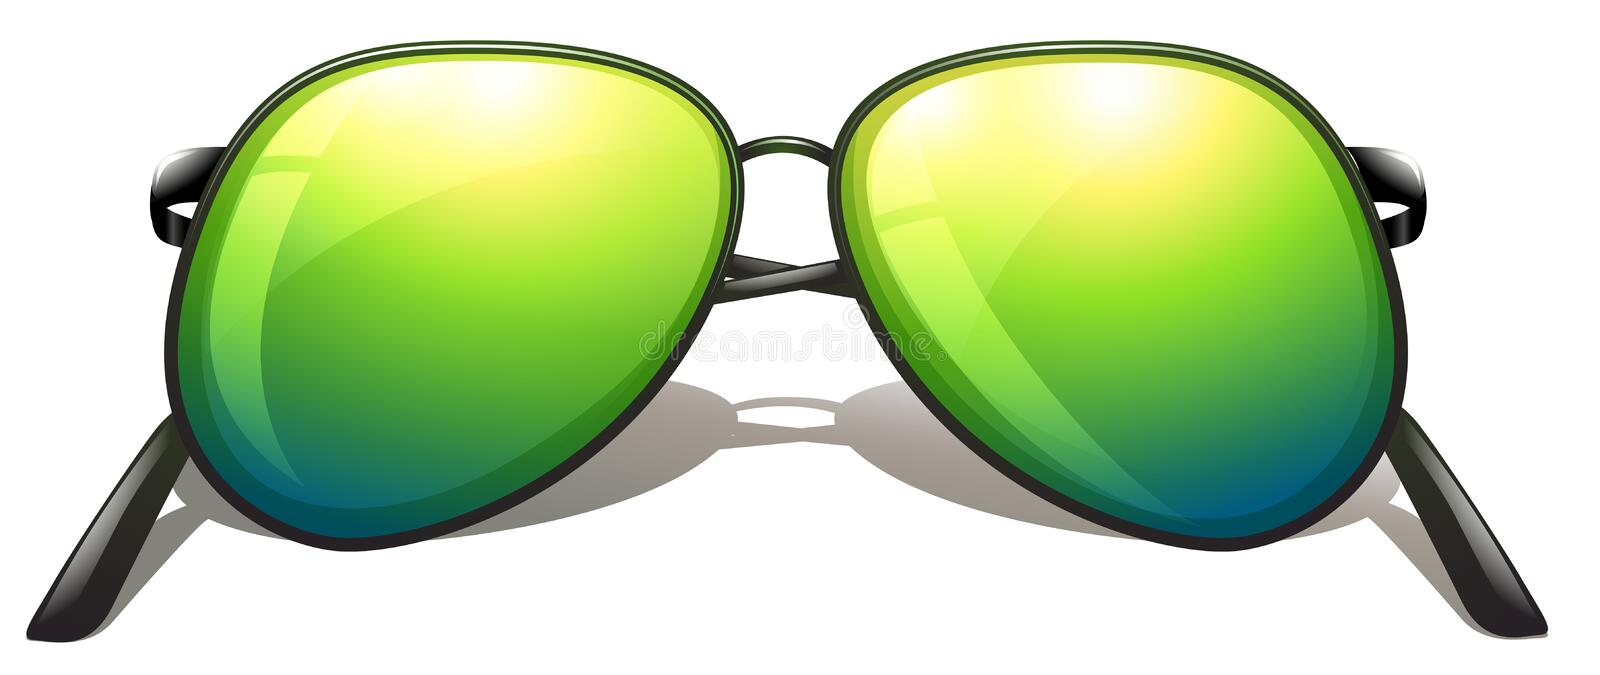 Download Green sunglasses stock vector. Image of drawing, joint - 43659800